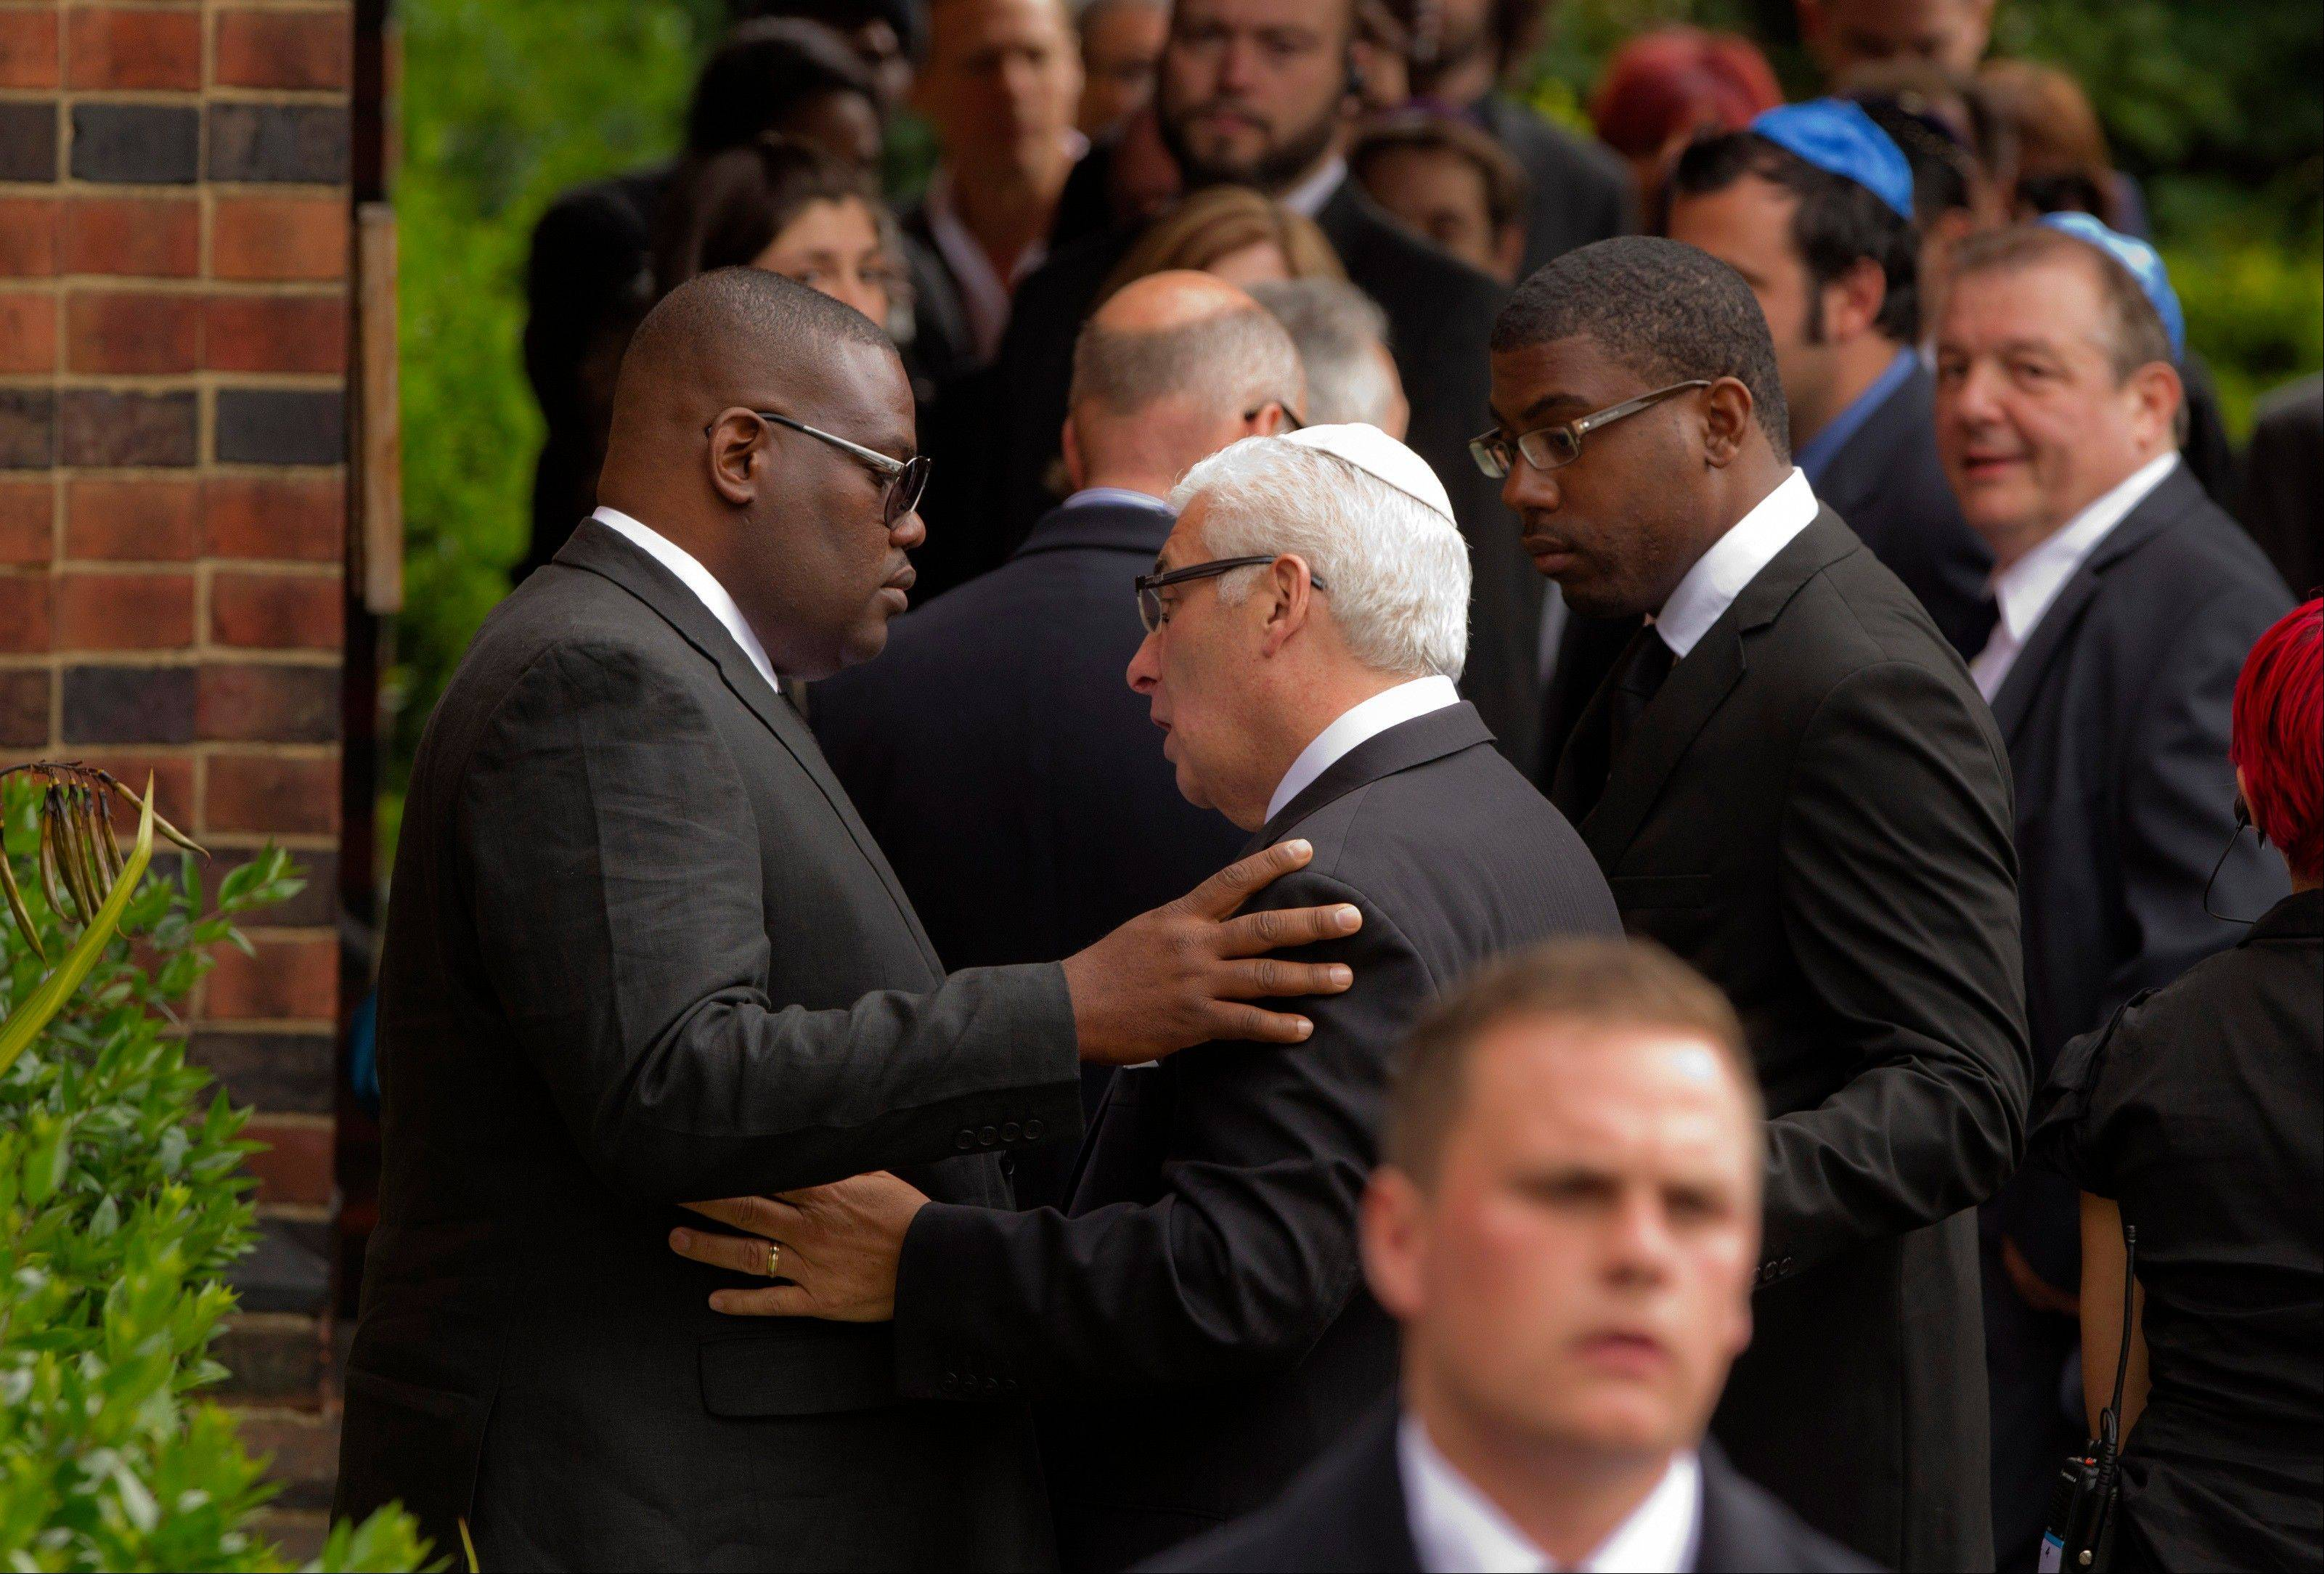 British singer Amy Winehouse's father Mitch, center, is consoled as he arrives at Golders Green Crematorium for the funeral ceremony of his daughter, north London, Tuesday, July 26, 2011.